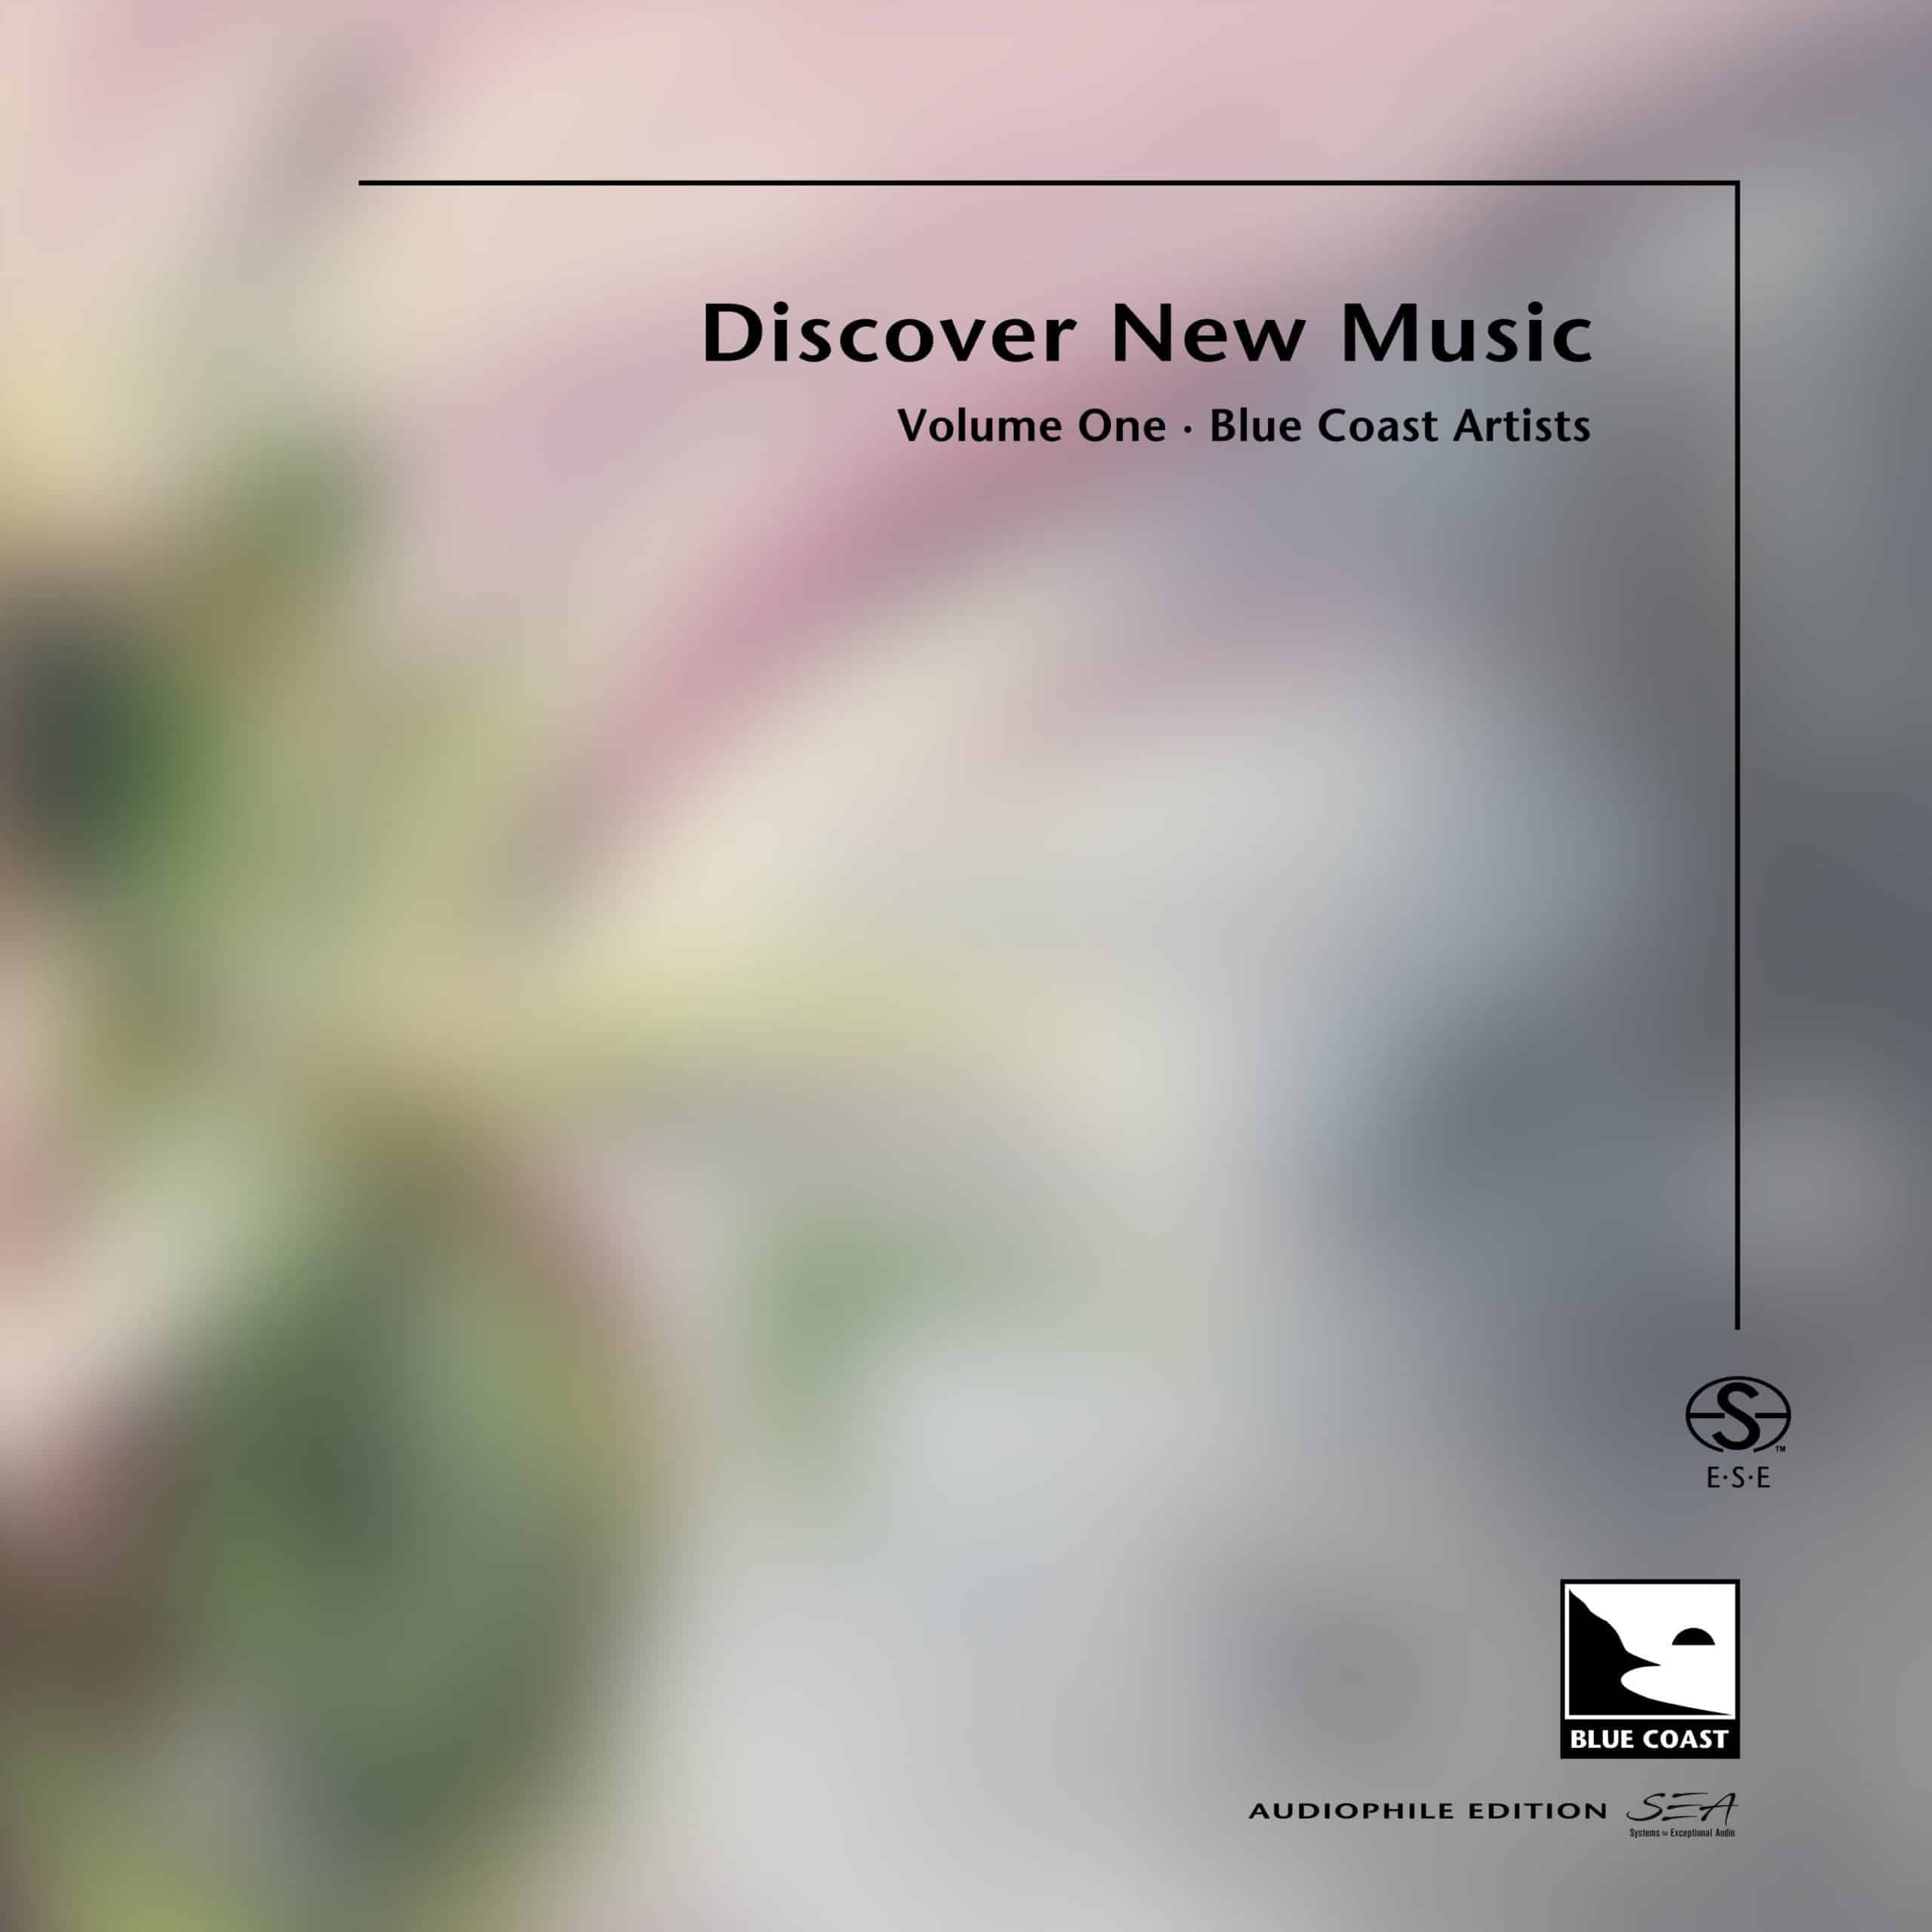 Discover New Music Vol. 1